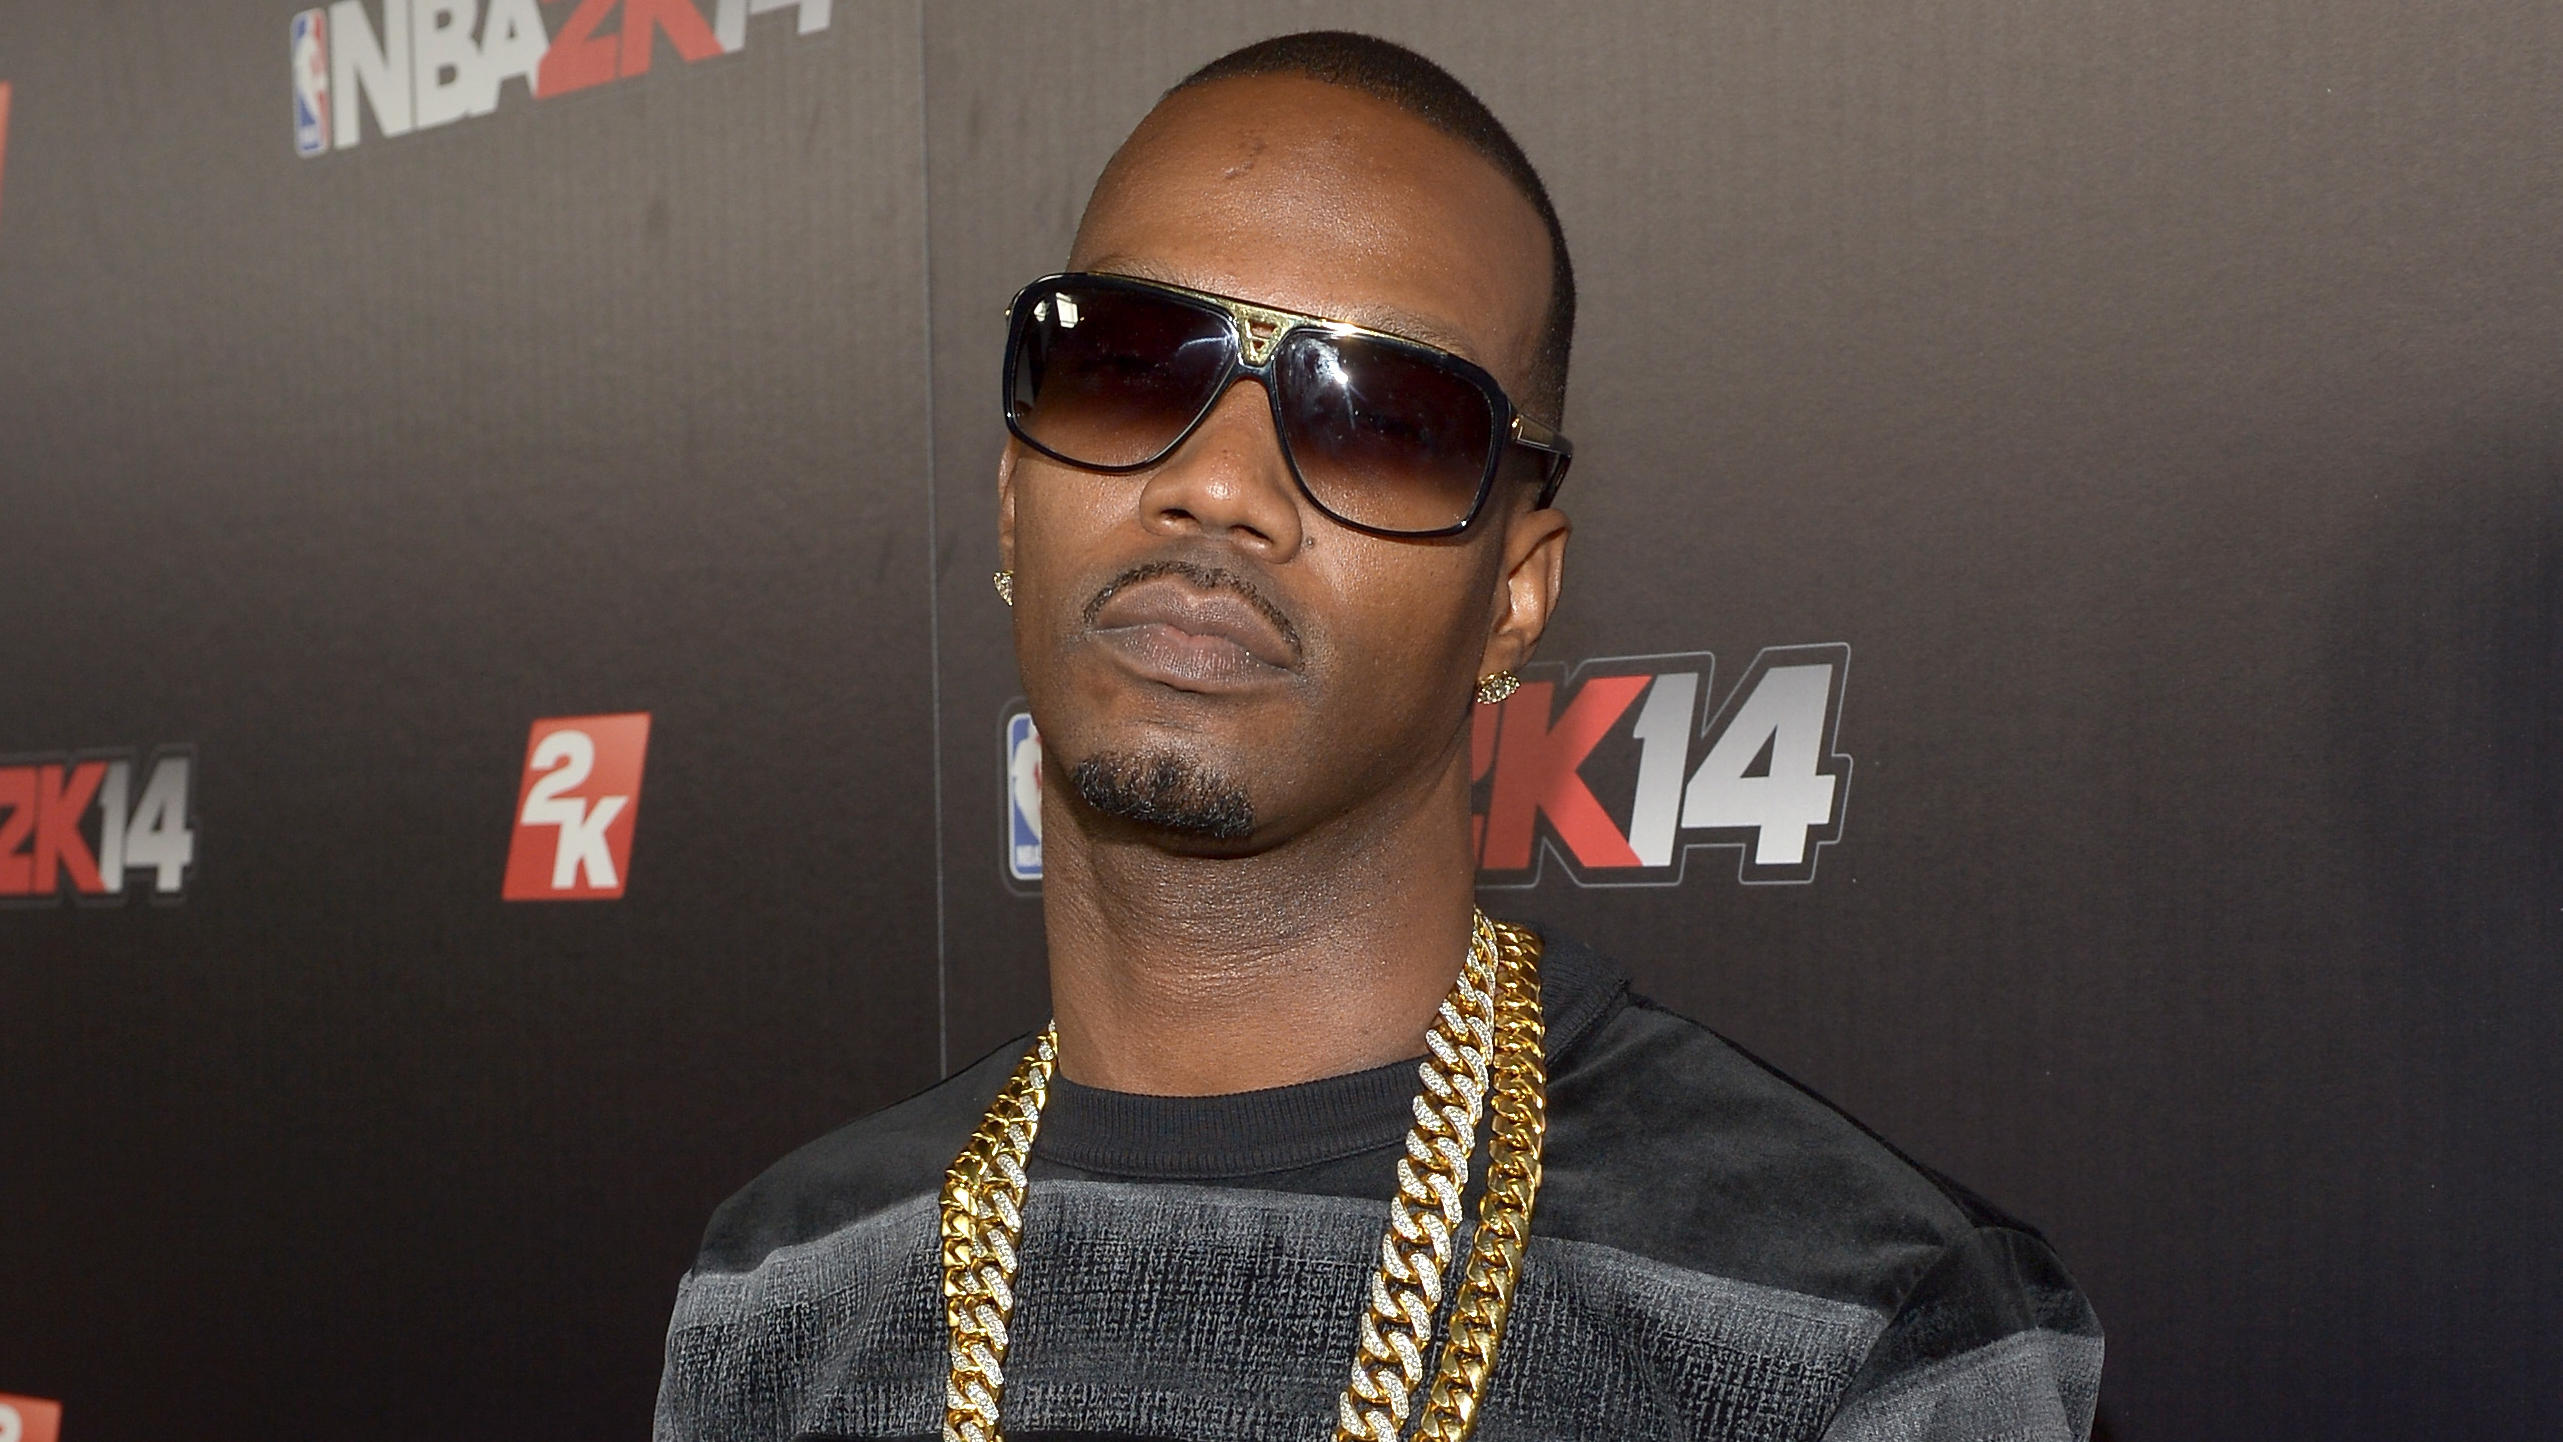 Juicy J earned a  million dollar salary, leaving the net worth at 20 million in 2017